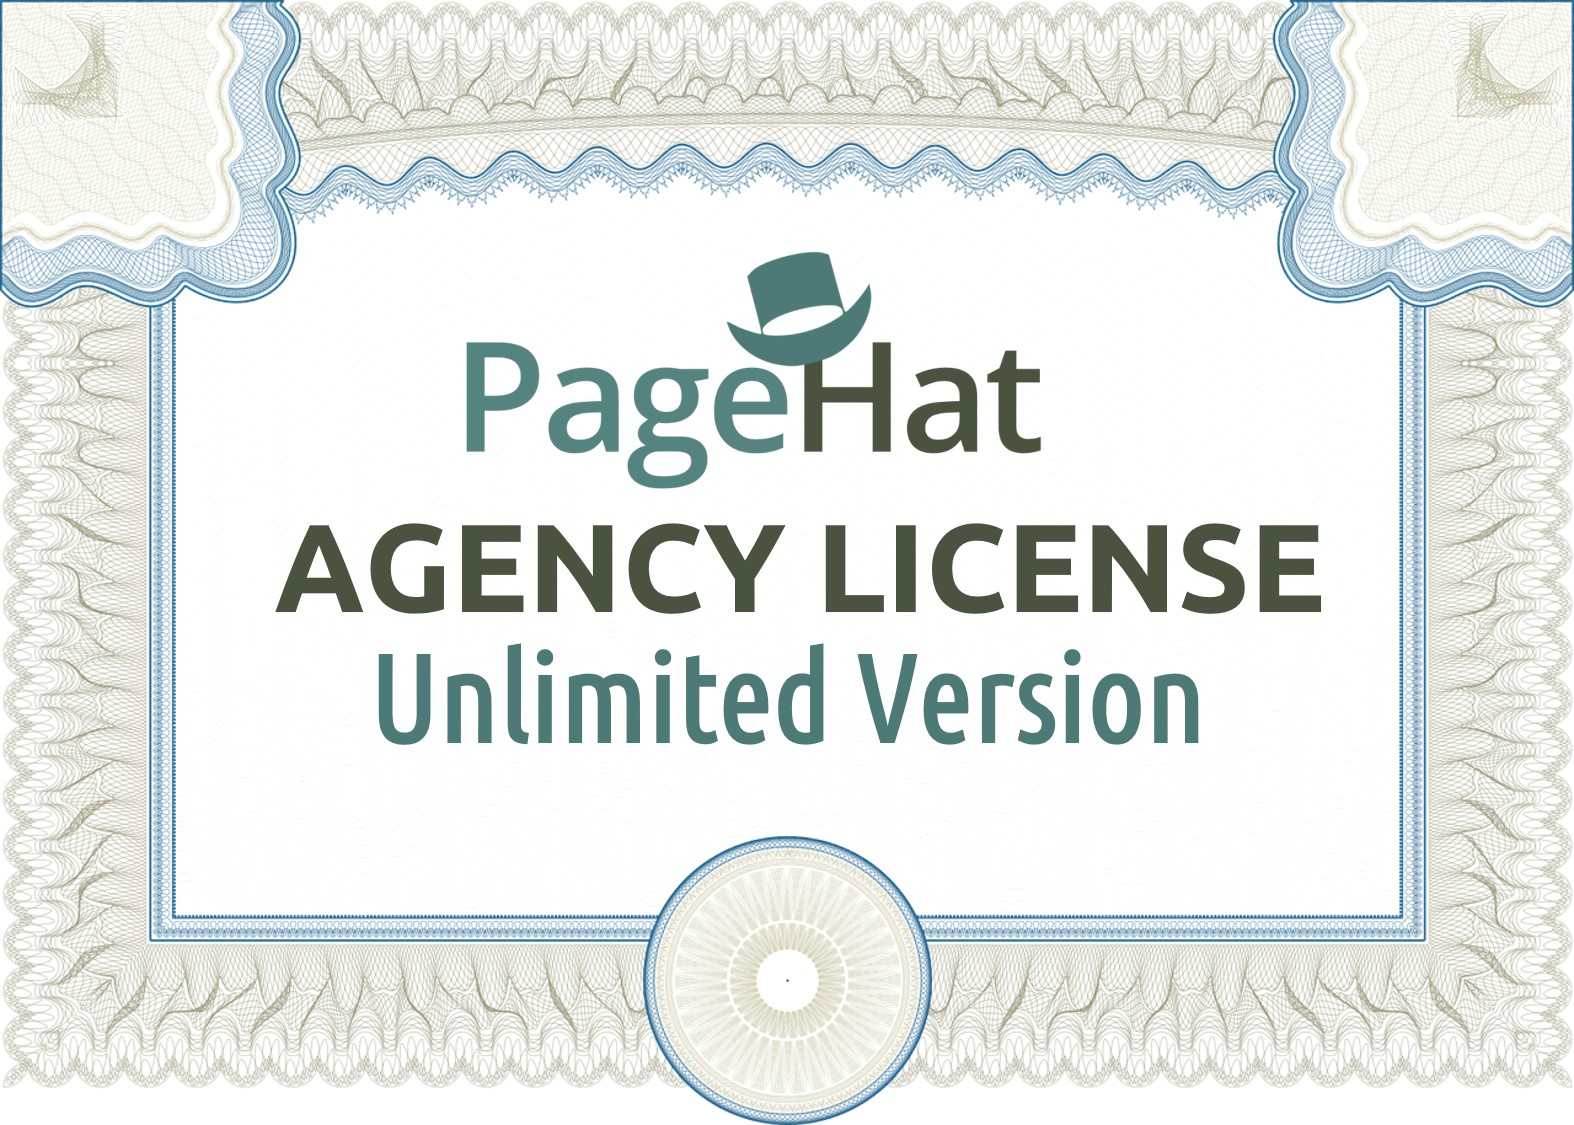 PageHat 2.0 Pro Agency